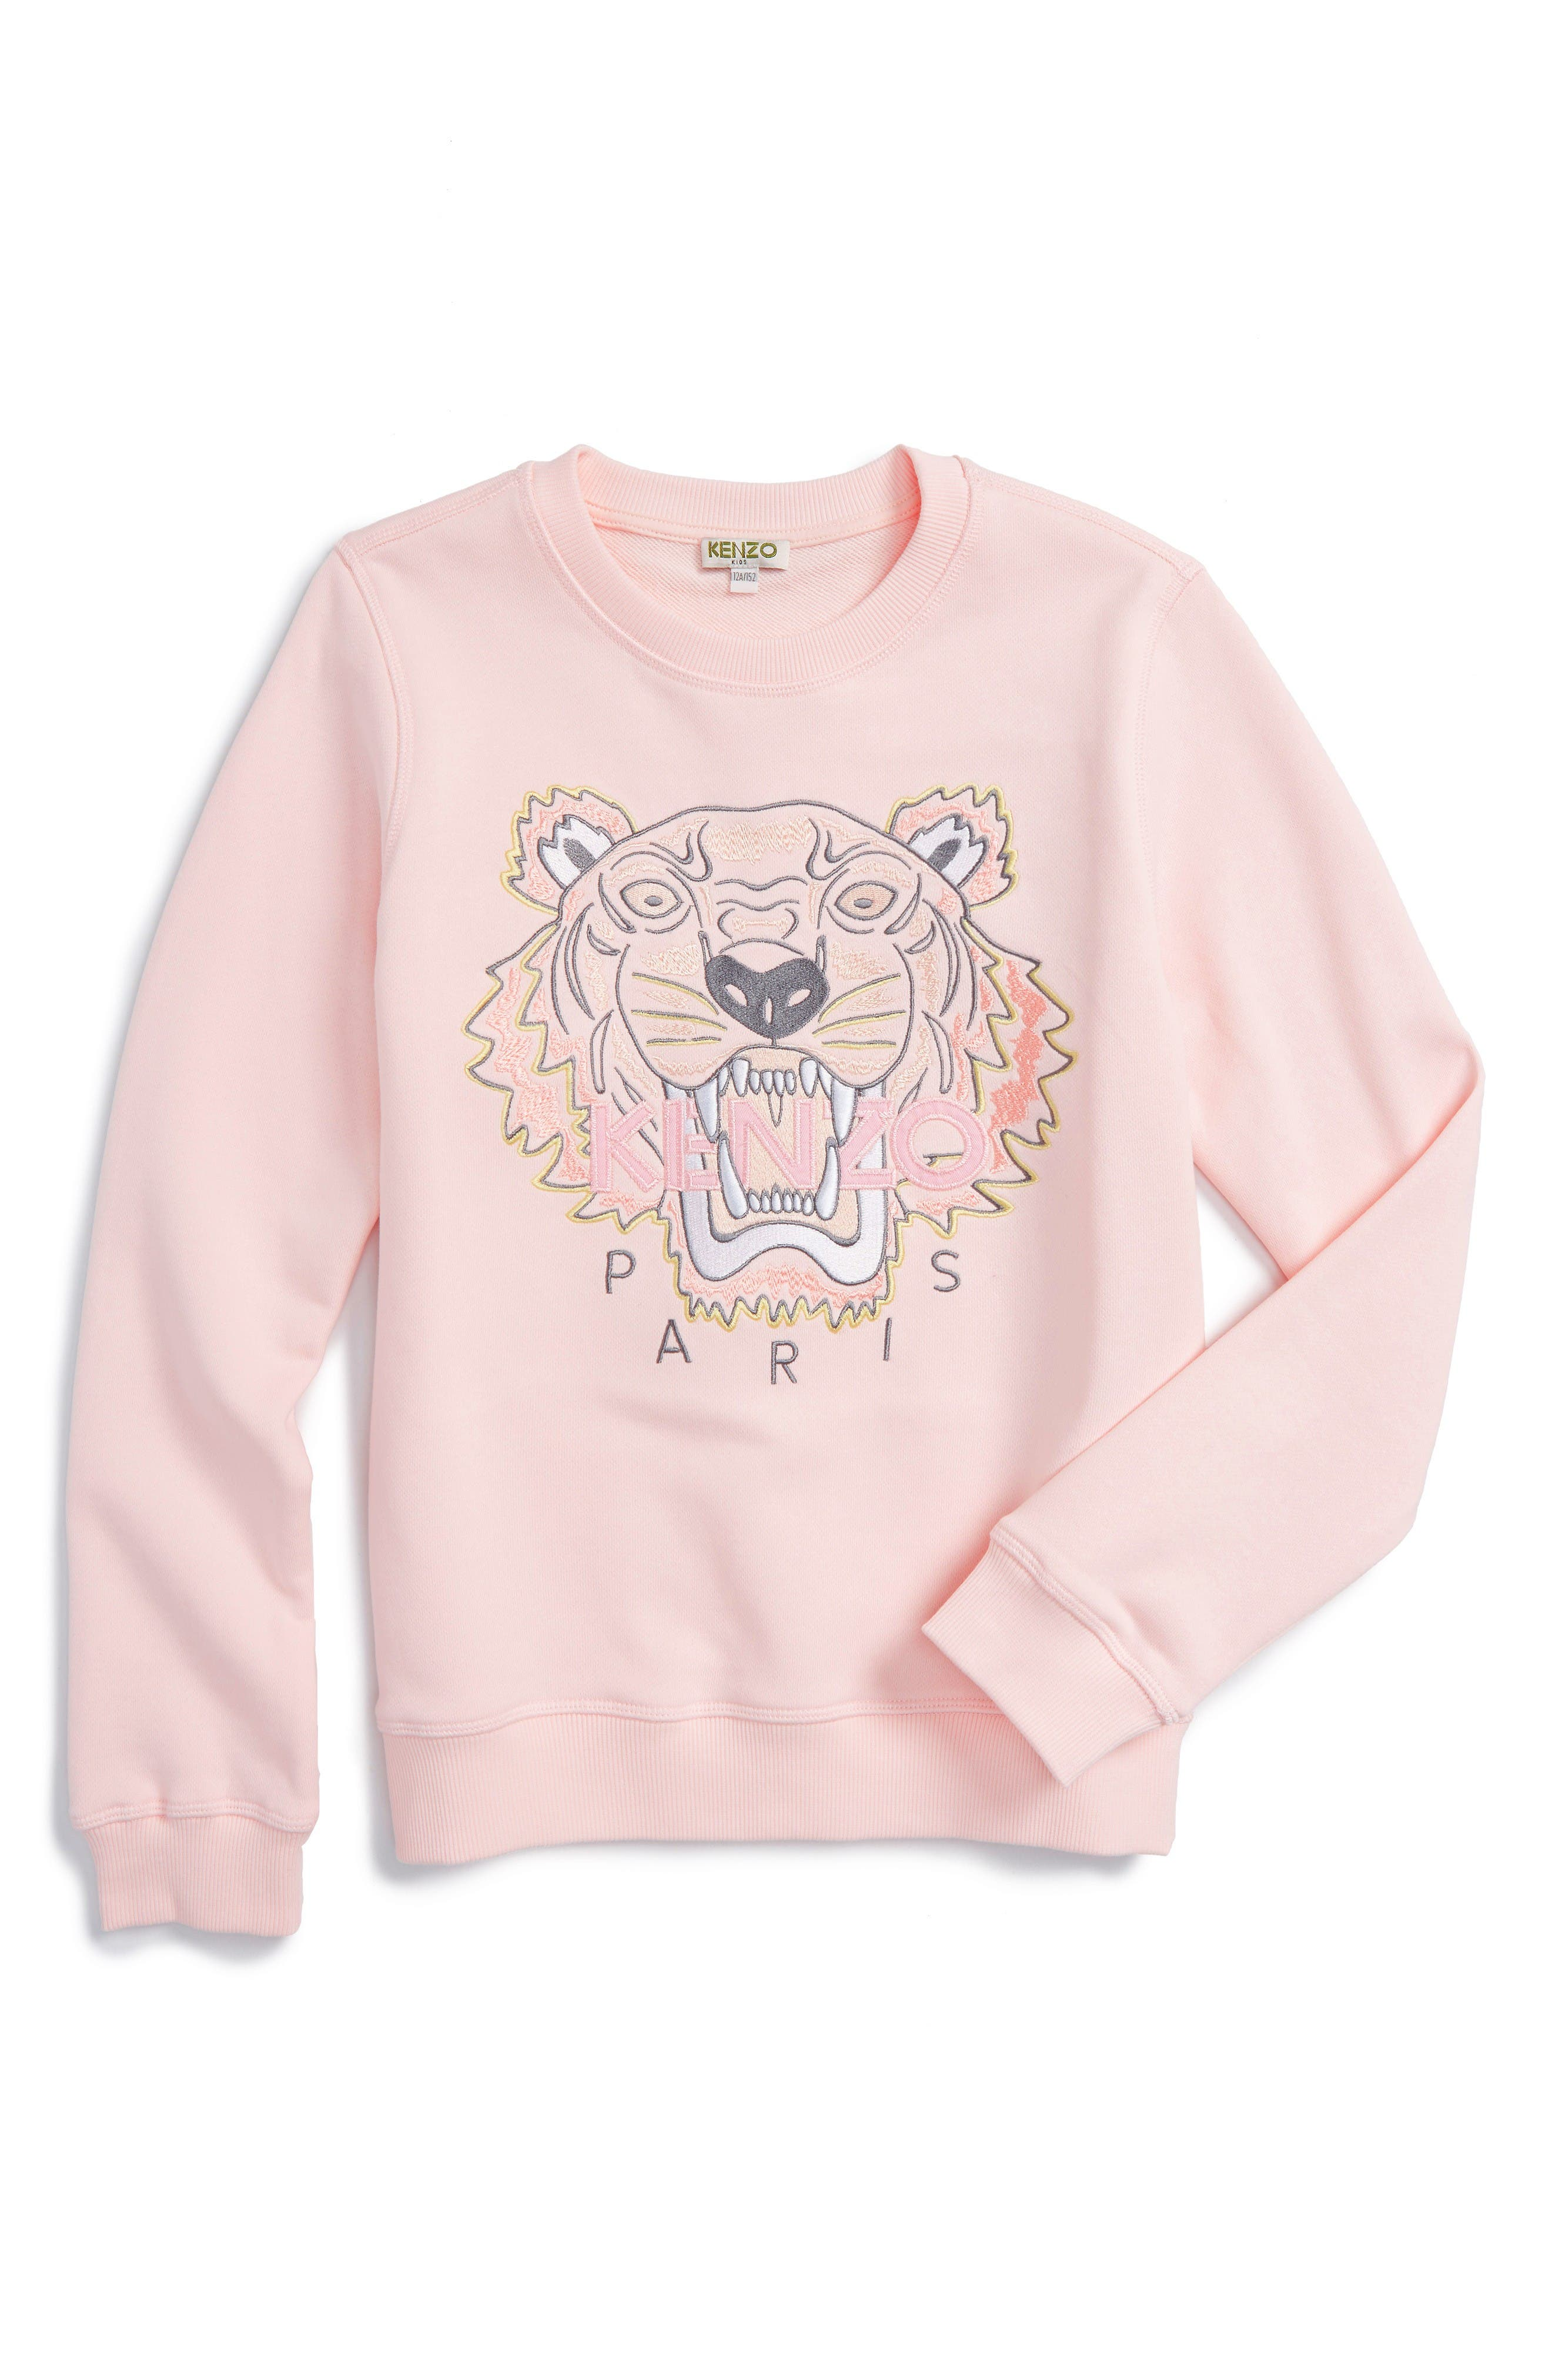 KENZO Logo Sweatshirt (Toddler Girls, Little Girls & Big Girls)